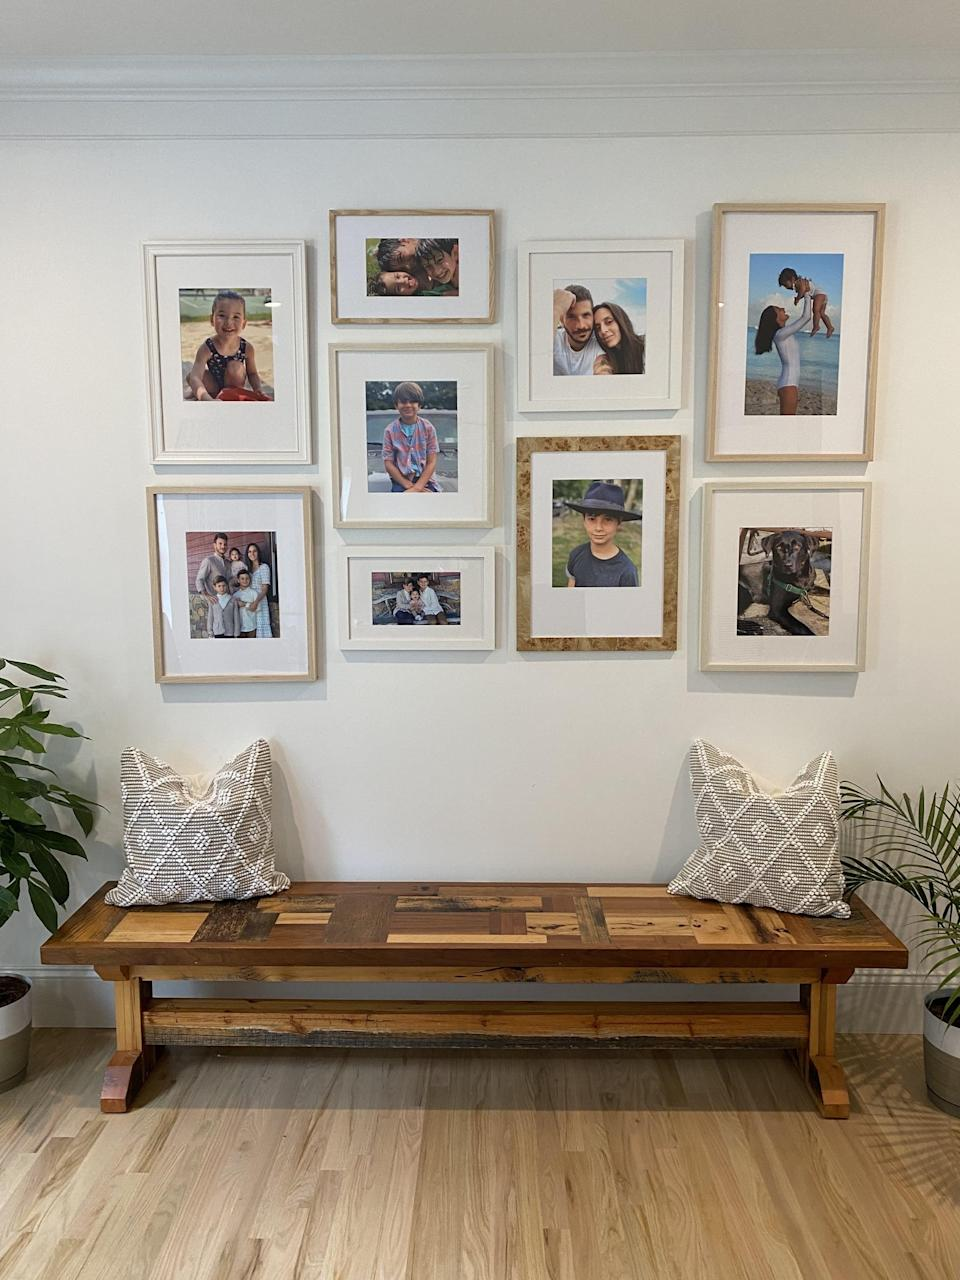 Completed Gallery Wall